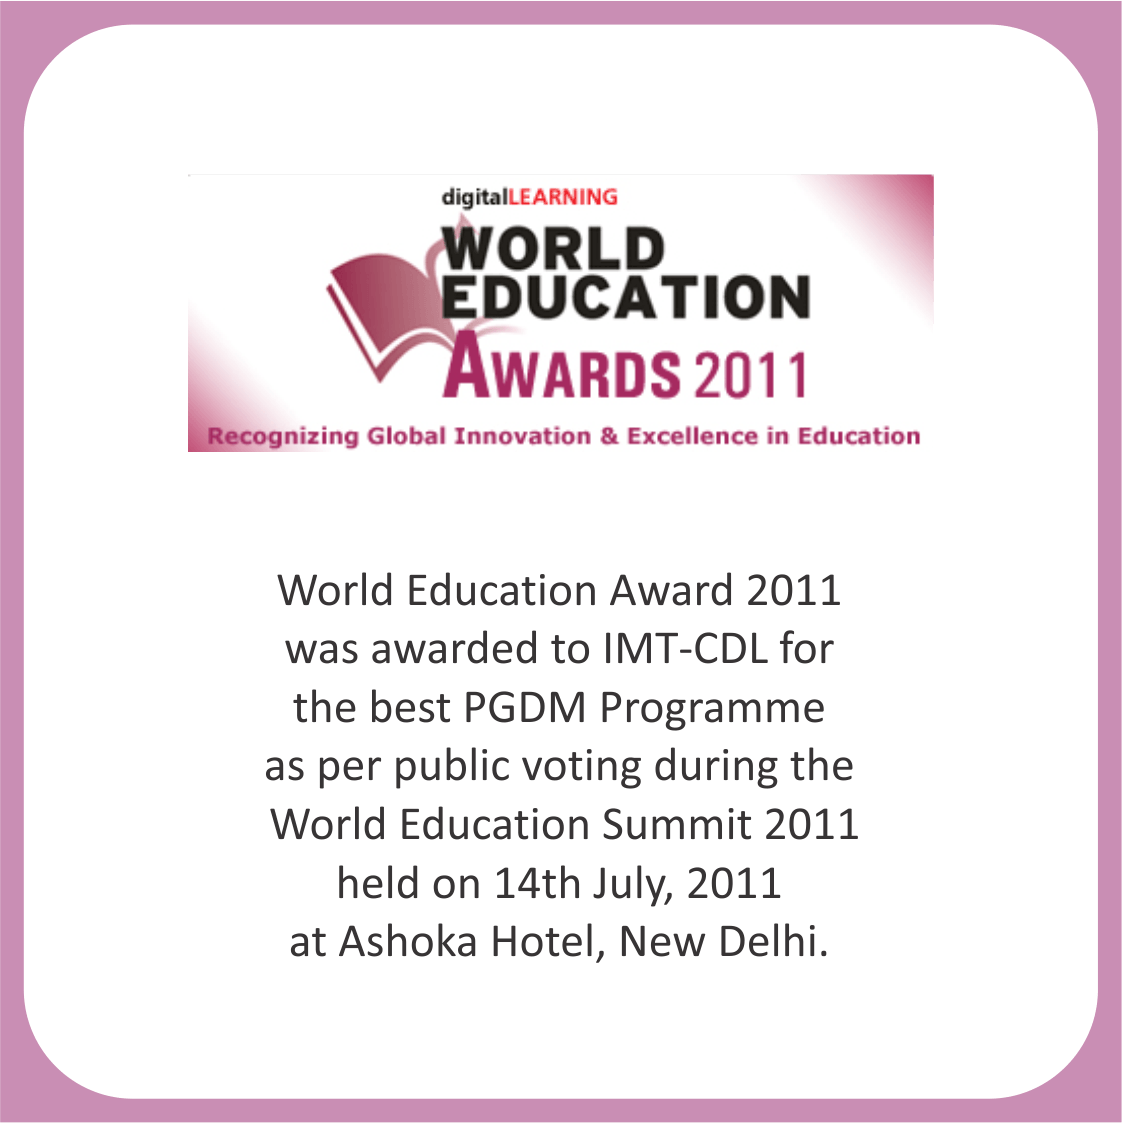 world education award